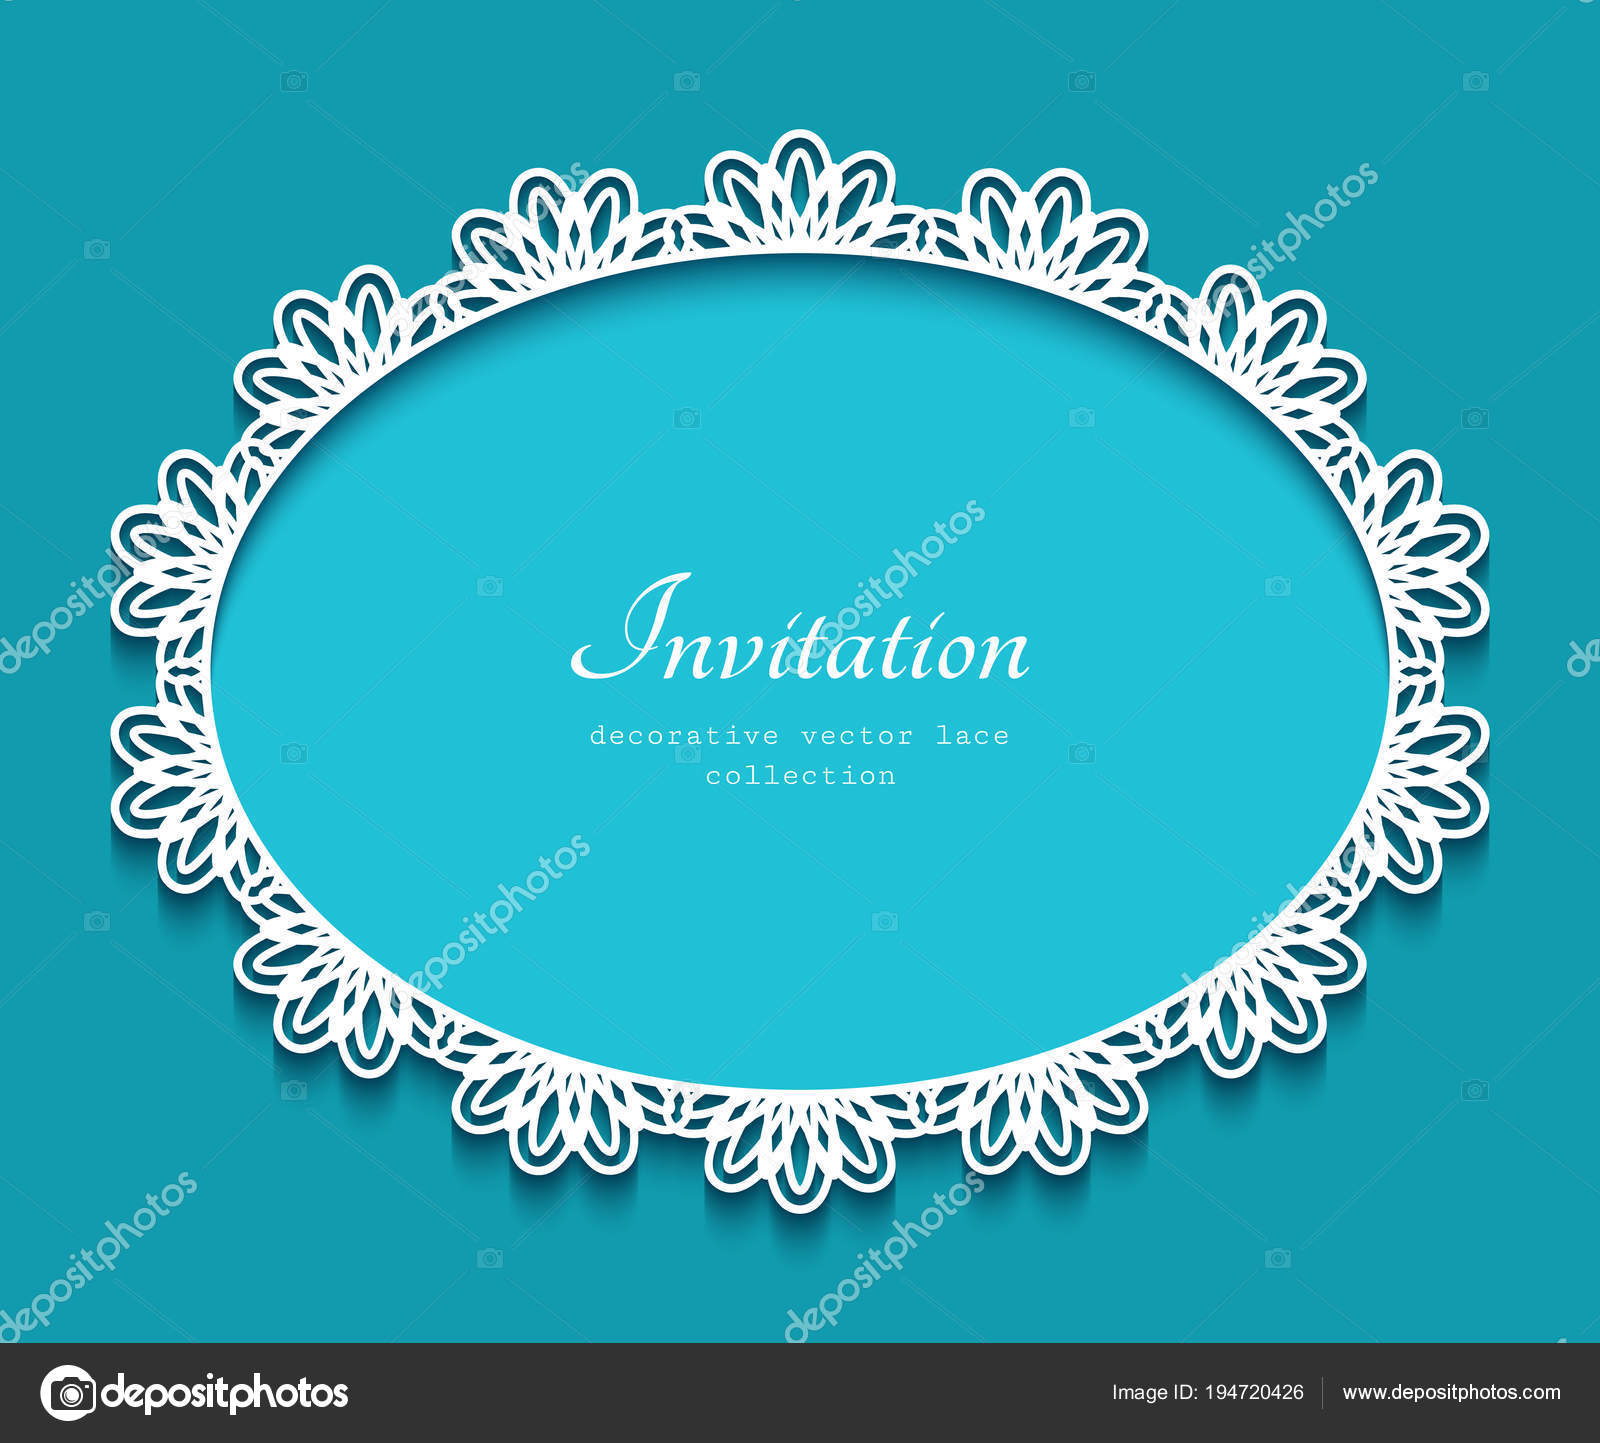 Oval Frame With Lace Border Pattern, Cutout Paper Ornament, Elegant  Decoration For Greeting Card Or Wedding Invitation, Laser Cutting Or Wood  Manufacturing ...